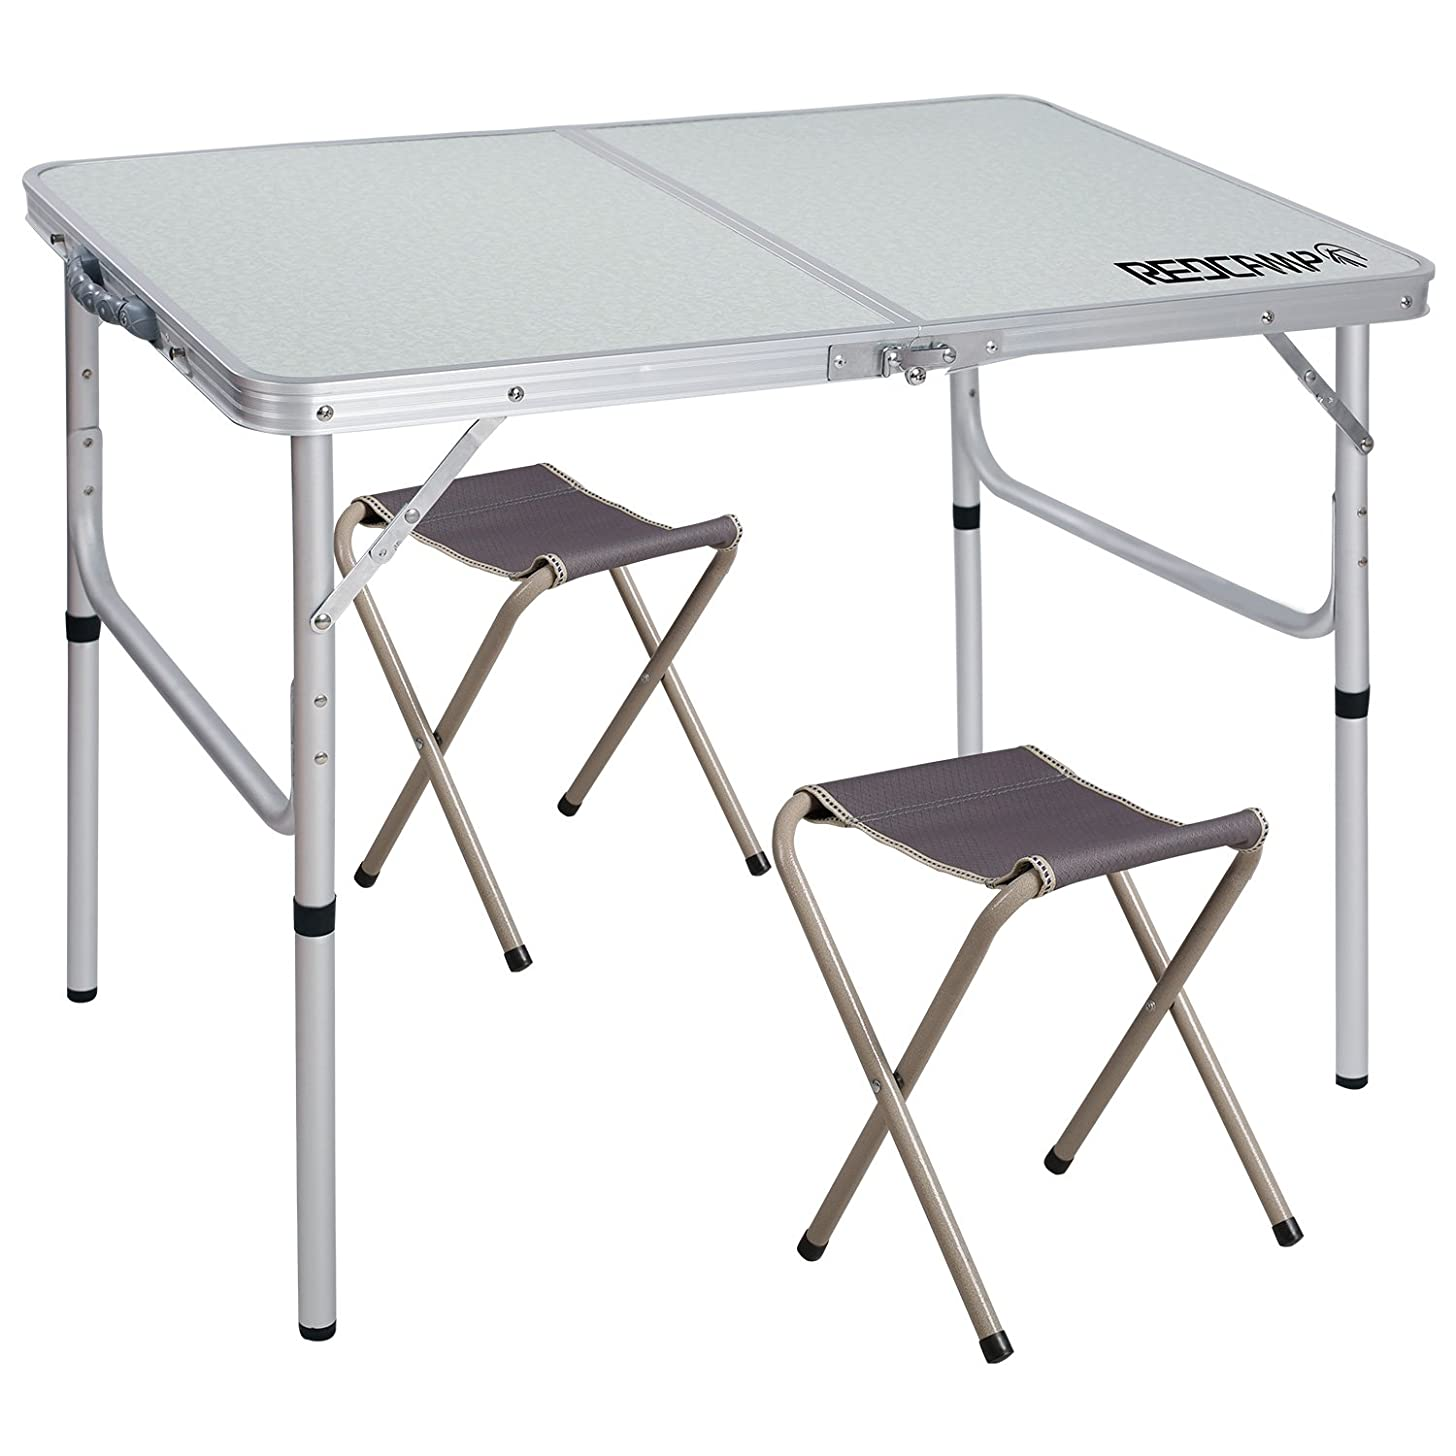 REDCAMP Aluminum Folding Table 3/4/6 Foot with Metal Stools, Adjustable Height Portable Camping Table and Chairs Set, Sturdy Lightweight